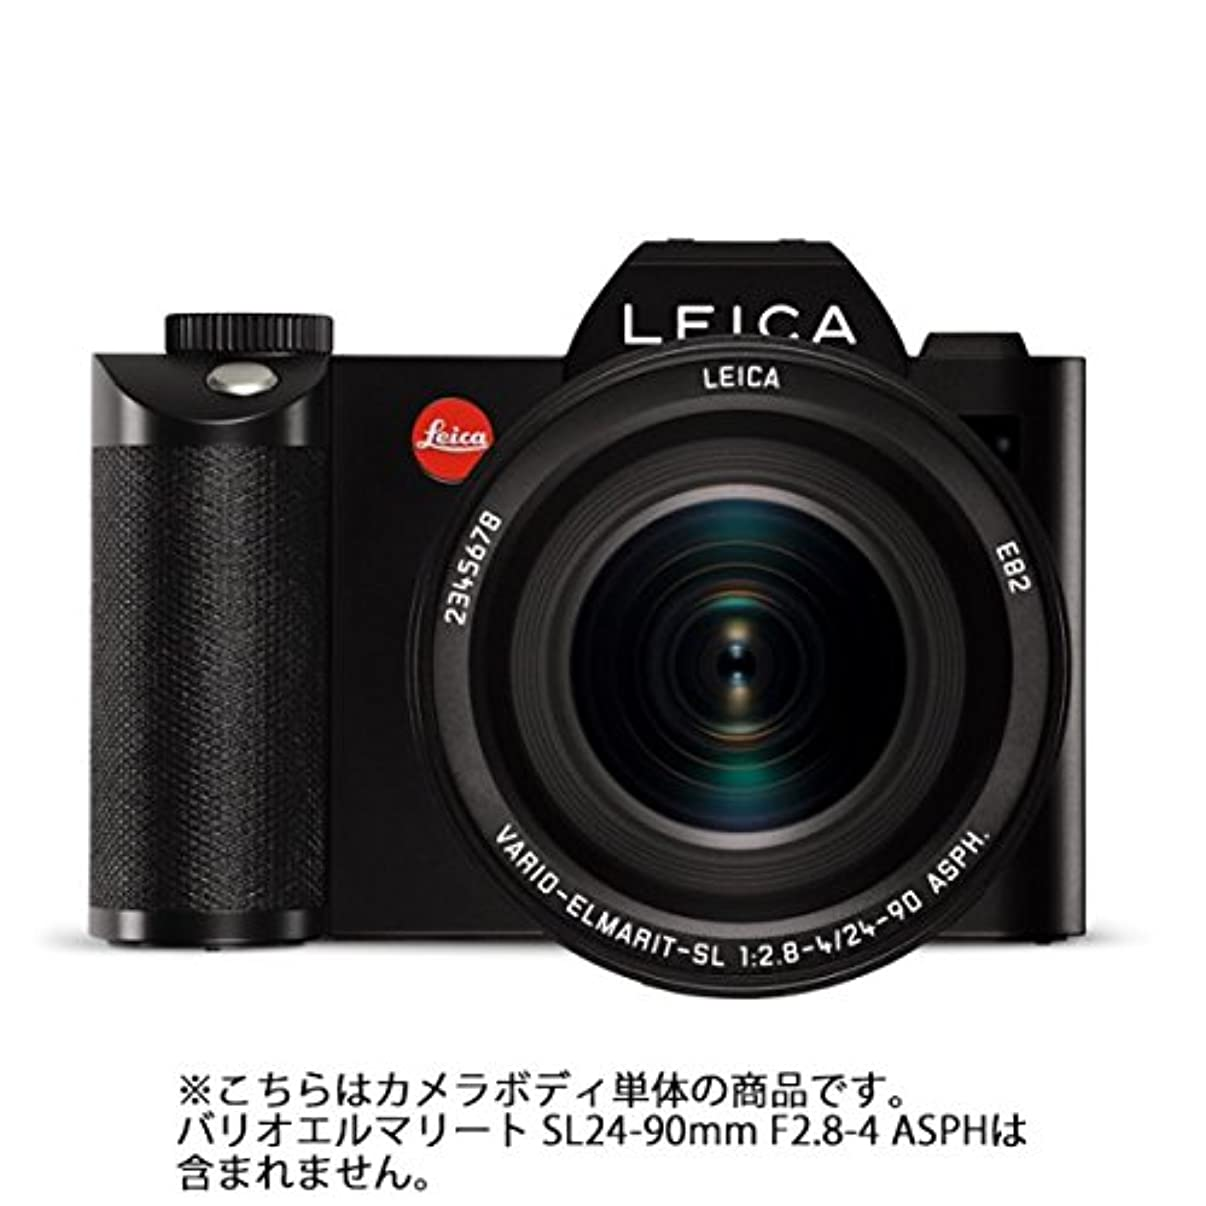 Leica SL (Typ 601) Mirrorless Digital Camera with Vario-Elmarit-SL 24-90mm f/2.8-4 ASPH. Lens